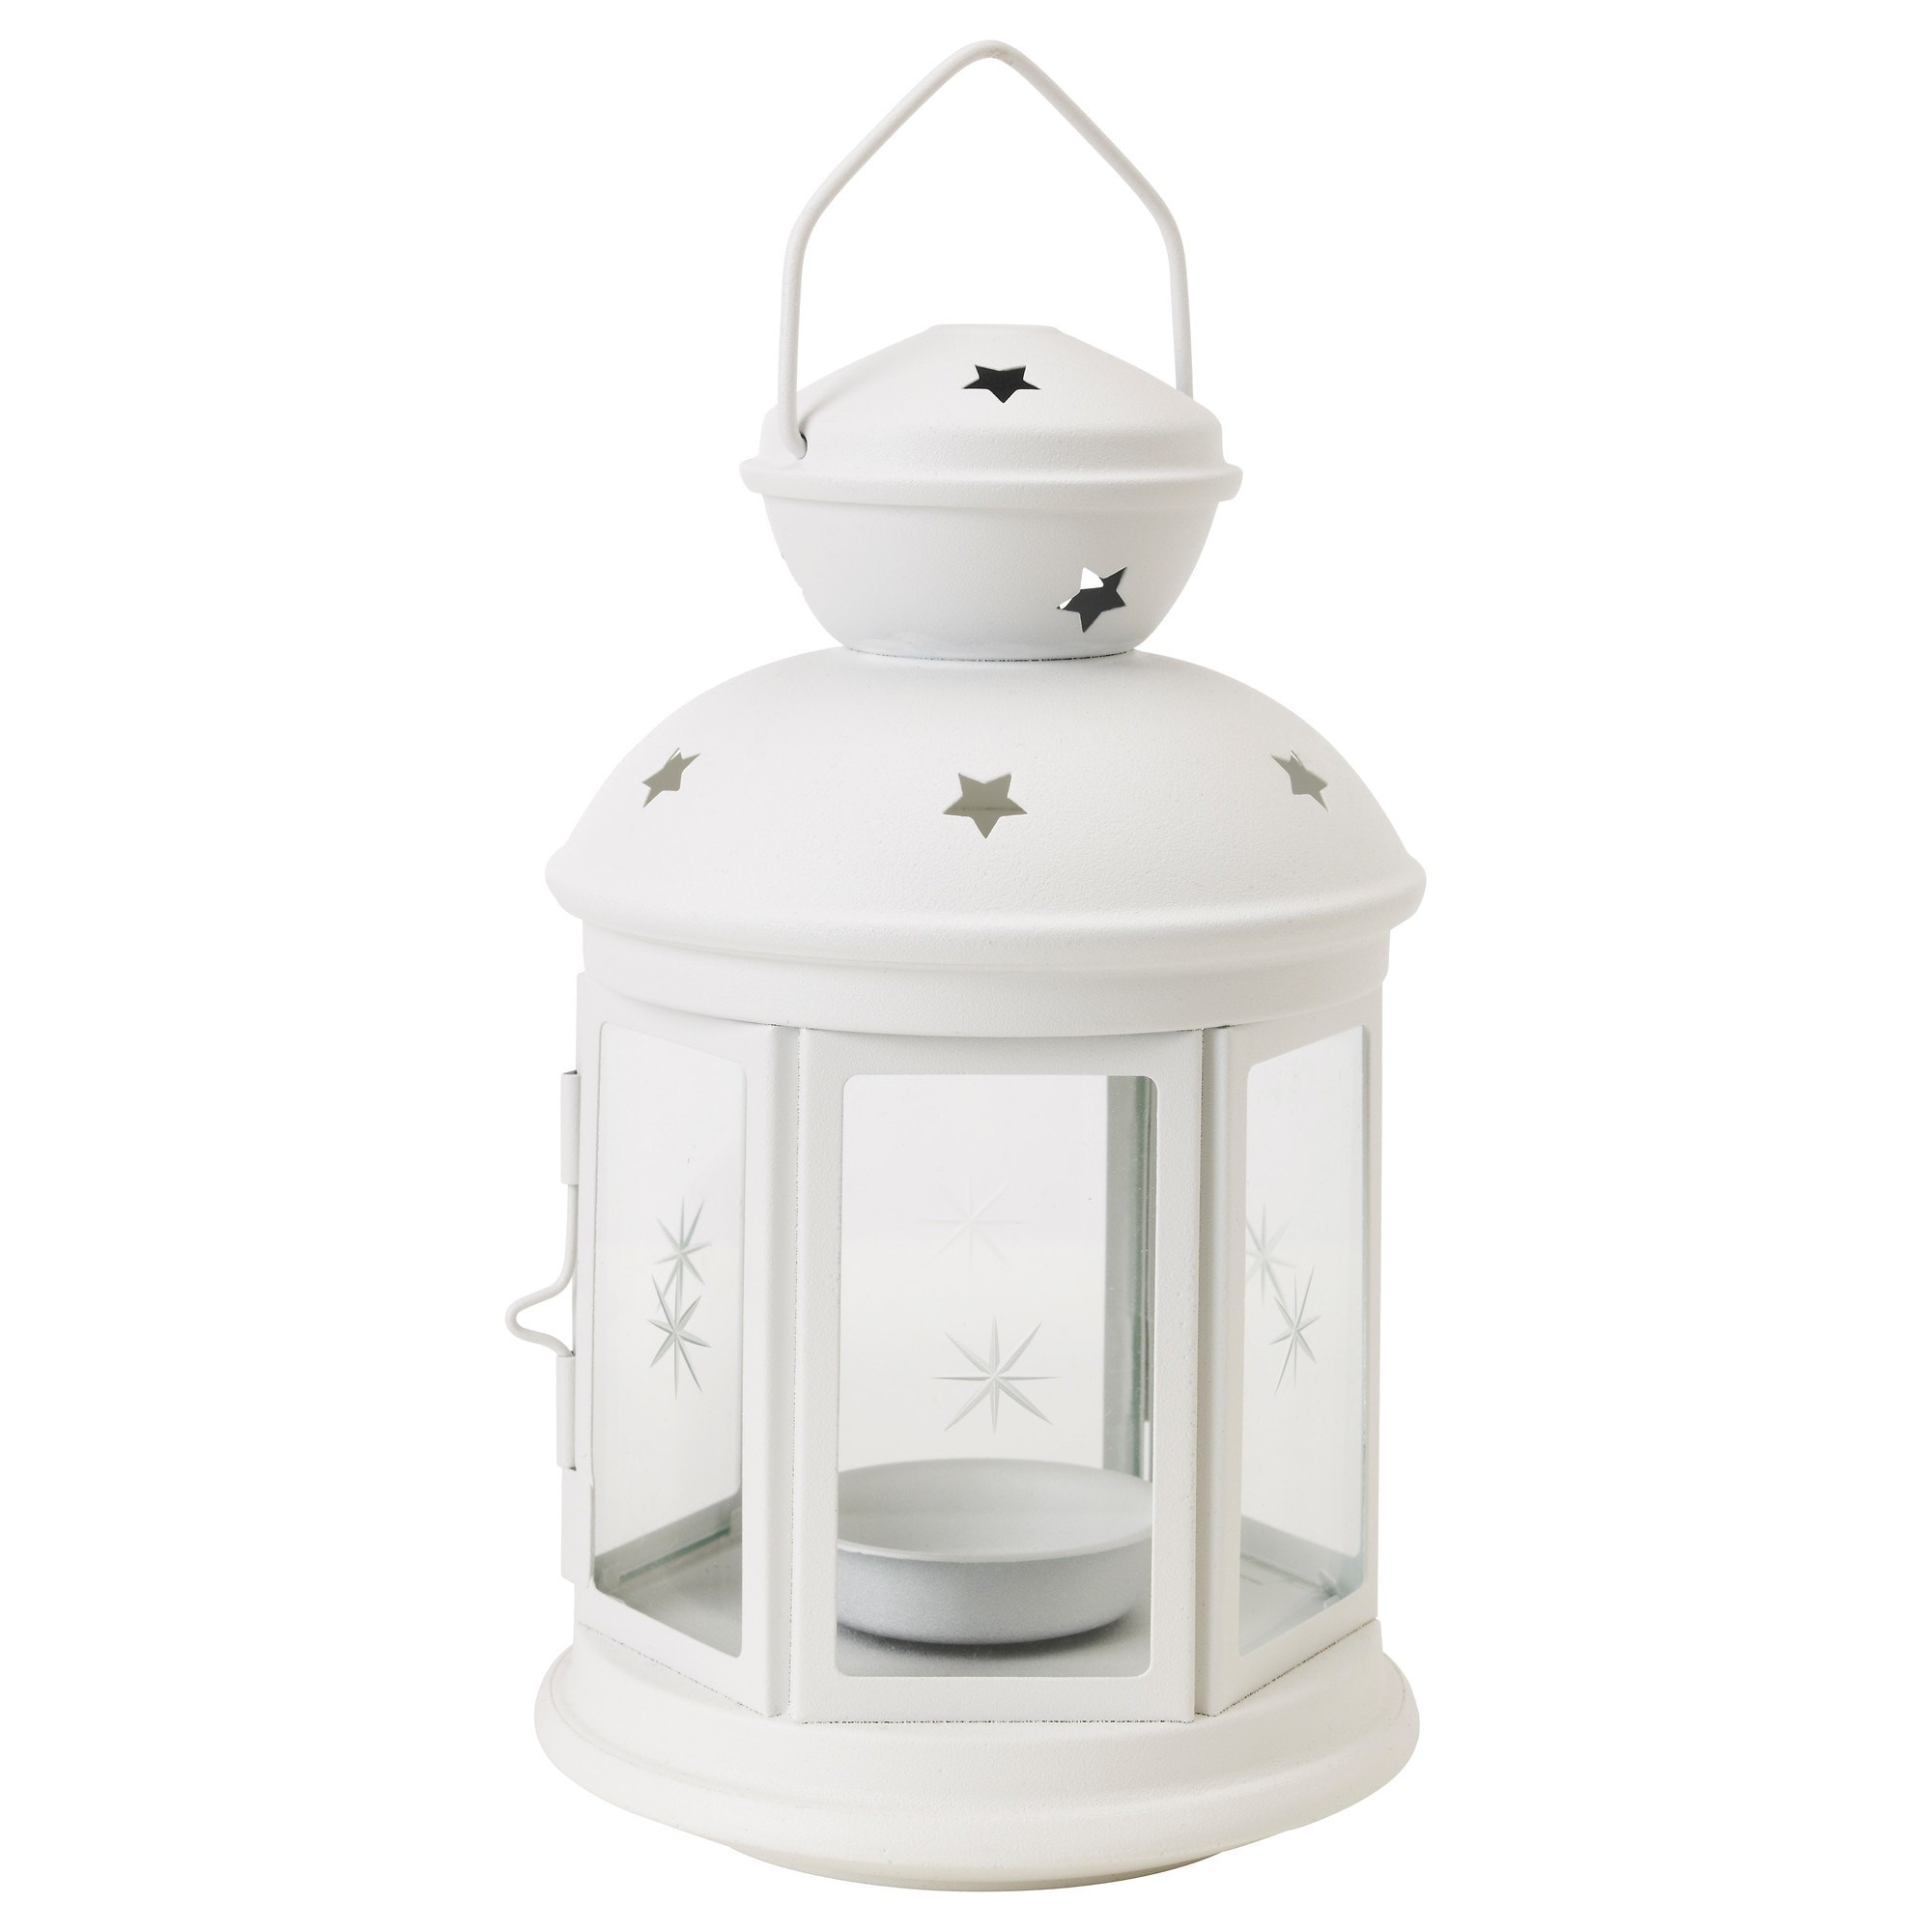 Homesense Vases Of Luxury Homesense Ceiling Lights Home Design Idea In Ikea Rotera Lantern for Tealight Suitable for Both Indoor and Outdoor Use